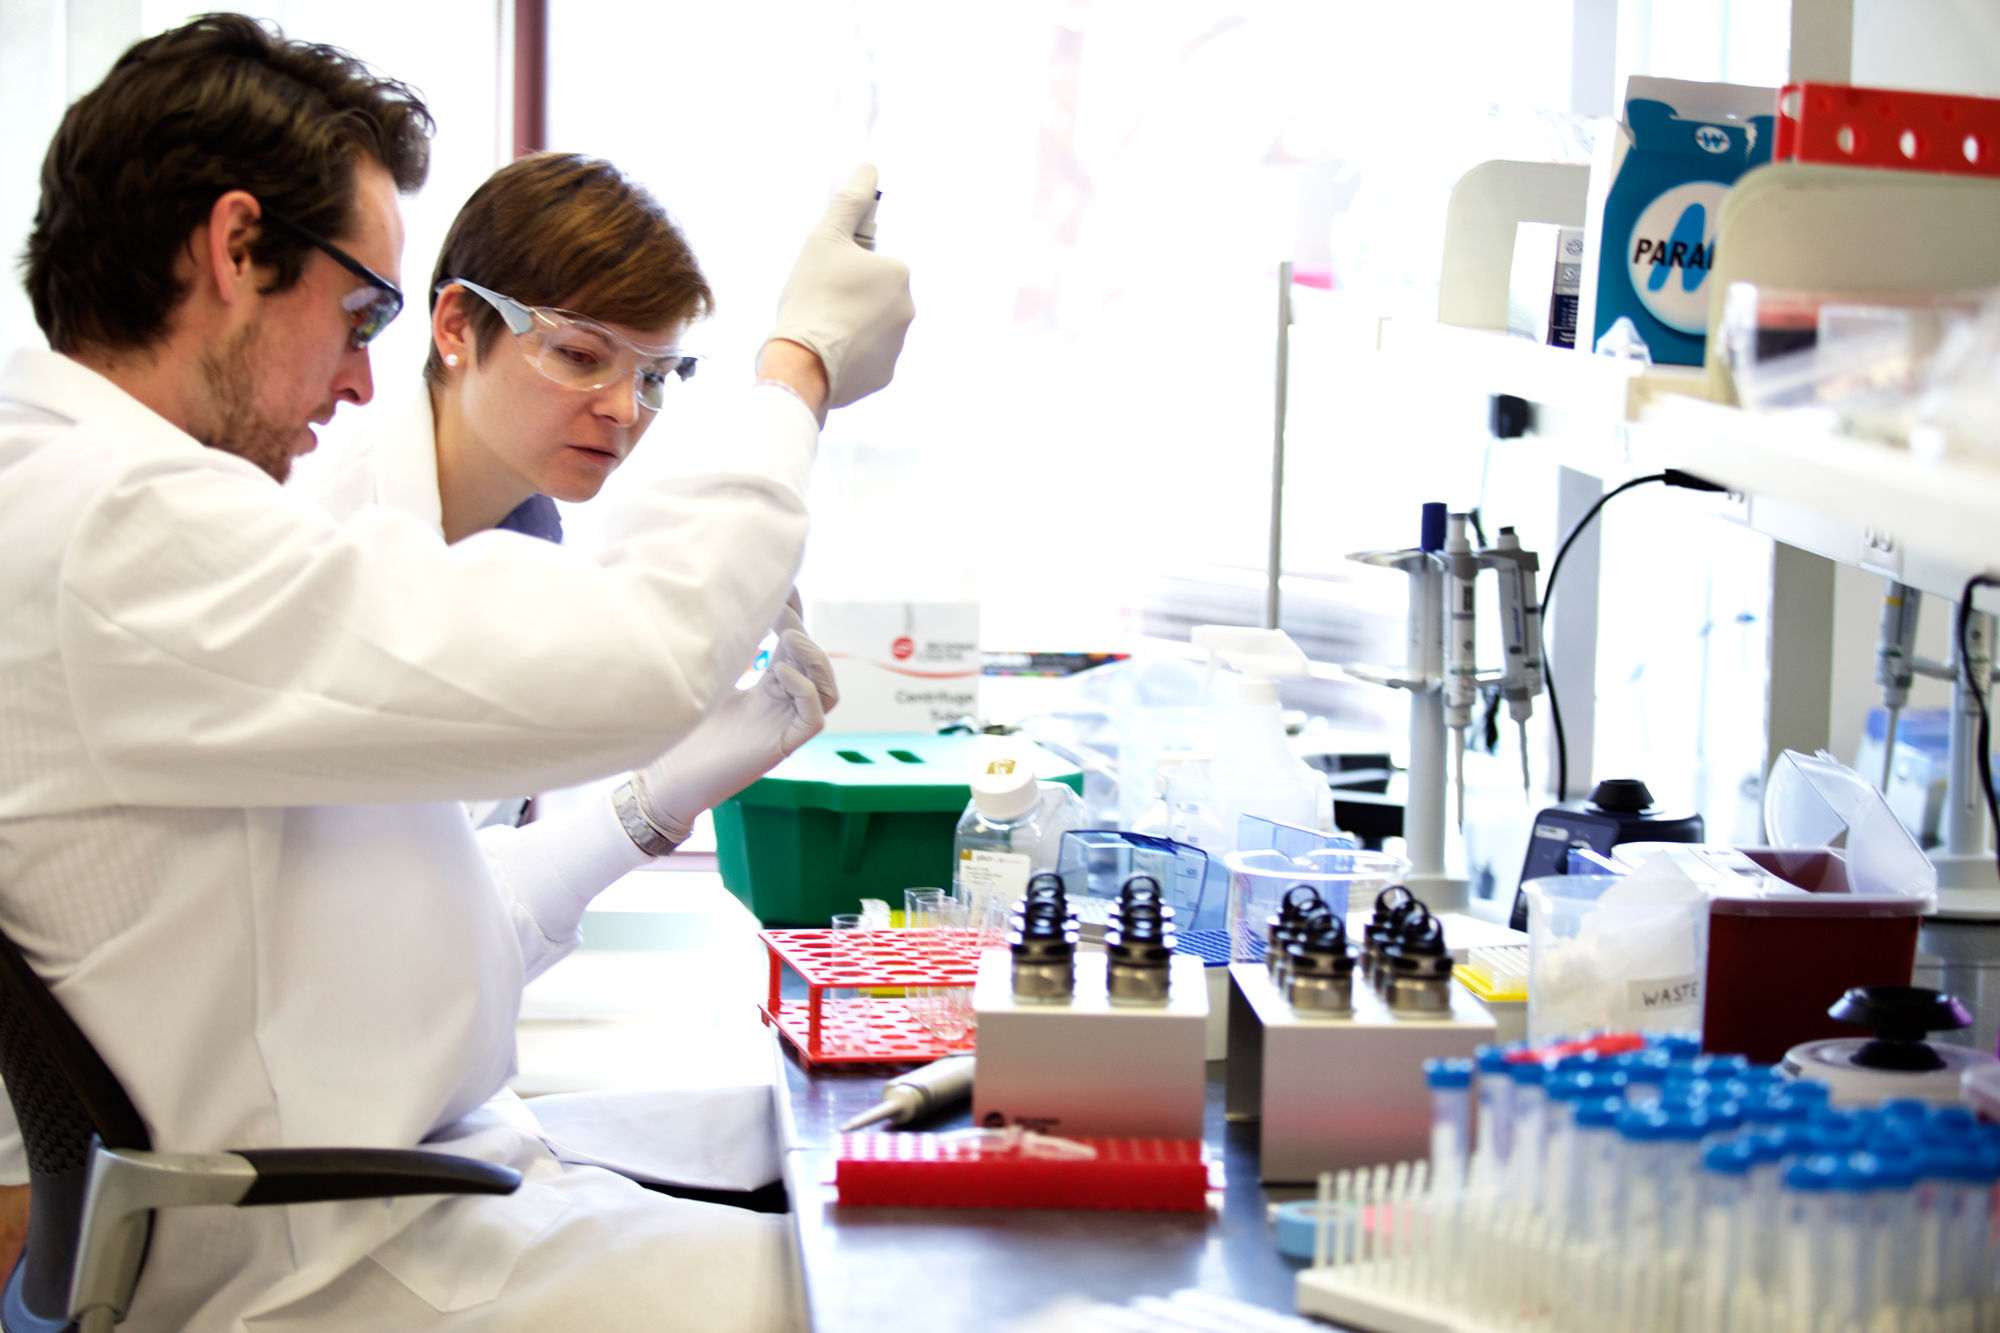 At Codiak Biosciences, researchers are working on engineering exosomes—tiny, naturally occurring sacs in the body—to treat pancreatic cancer.